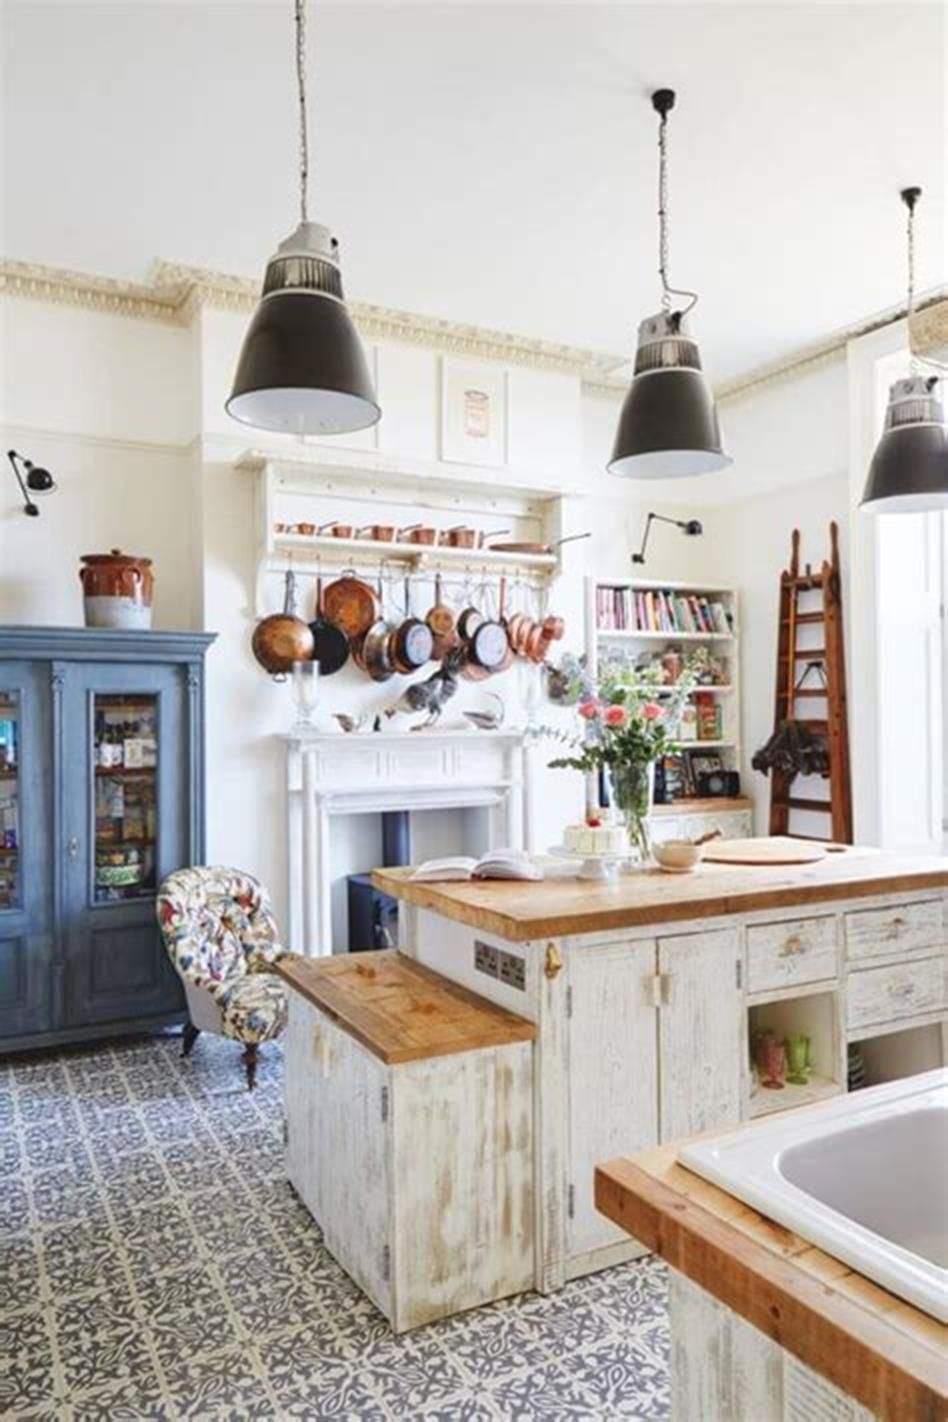 31 Awesome Vintage Kitchen Decorating And Design Ideas Homeandcraft Rustic Country Kitchens French Kitchen Decor Vintage Kitchen